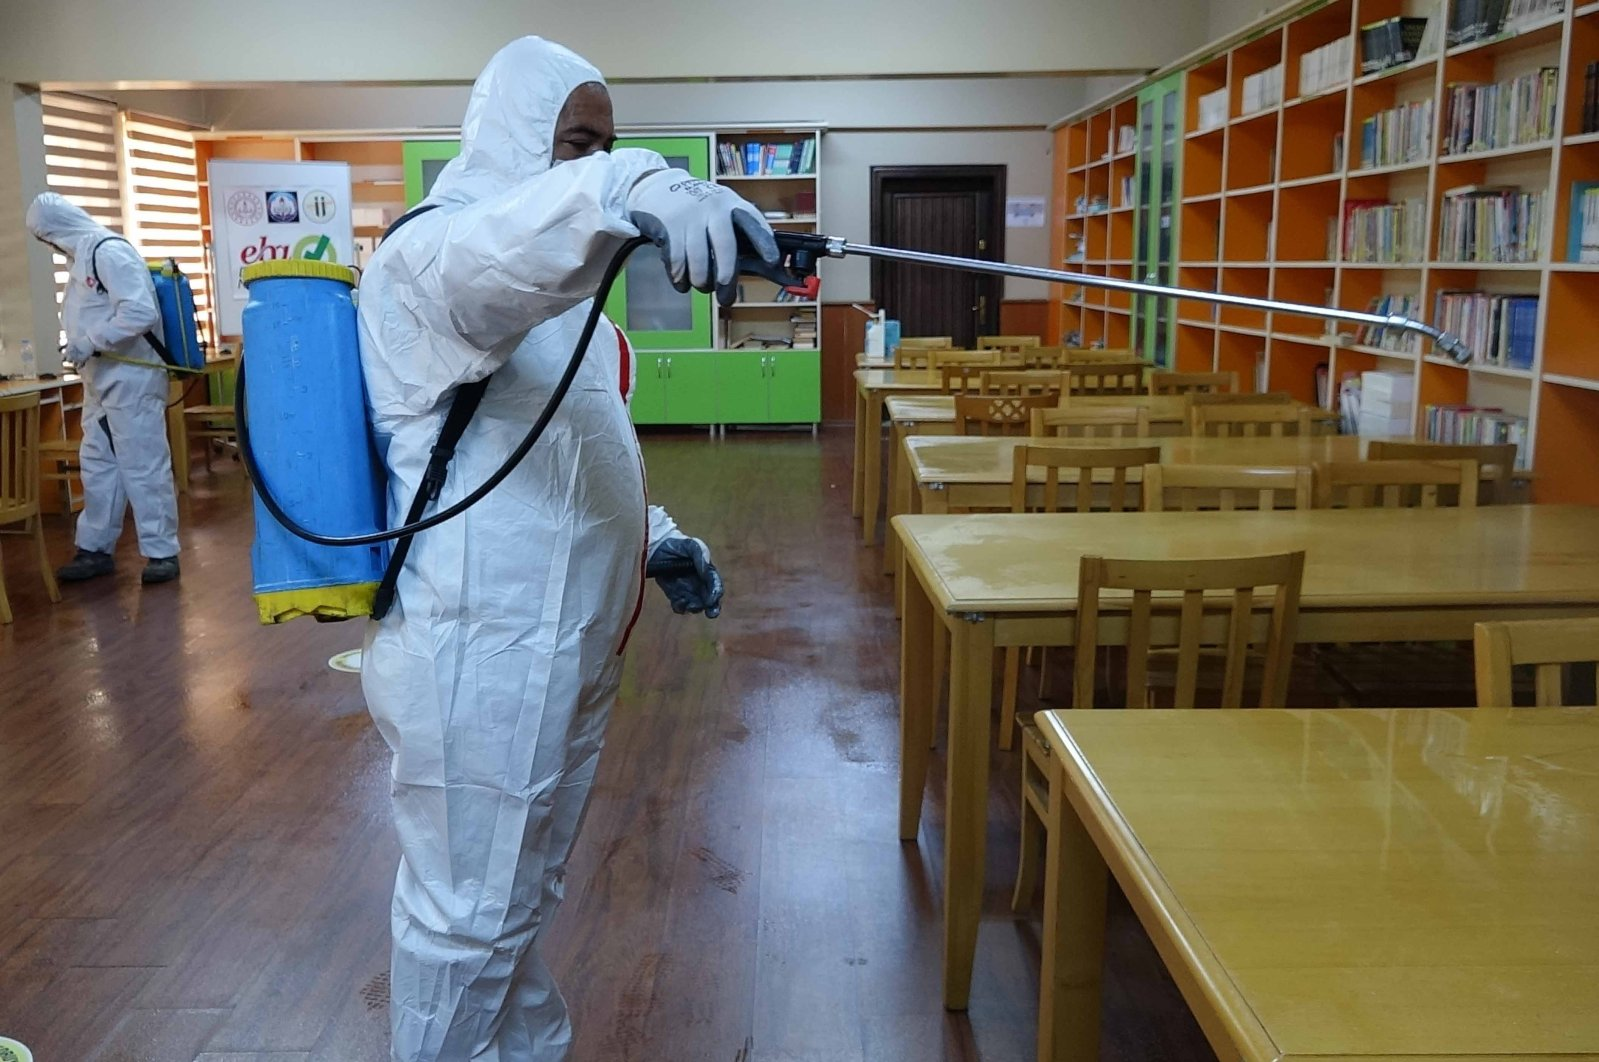 A man dressed in personal protective equiment (PPE) disinfects tables and bookshelves at a school in Adana province, southern Turkey, Sept. 3, 2020. (IHA Photo)